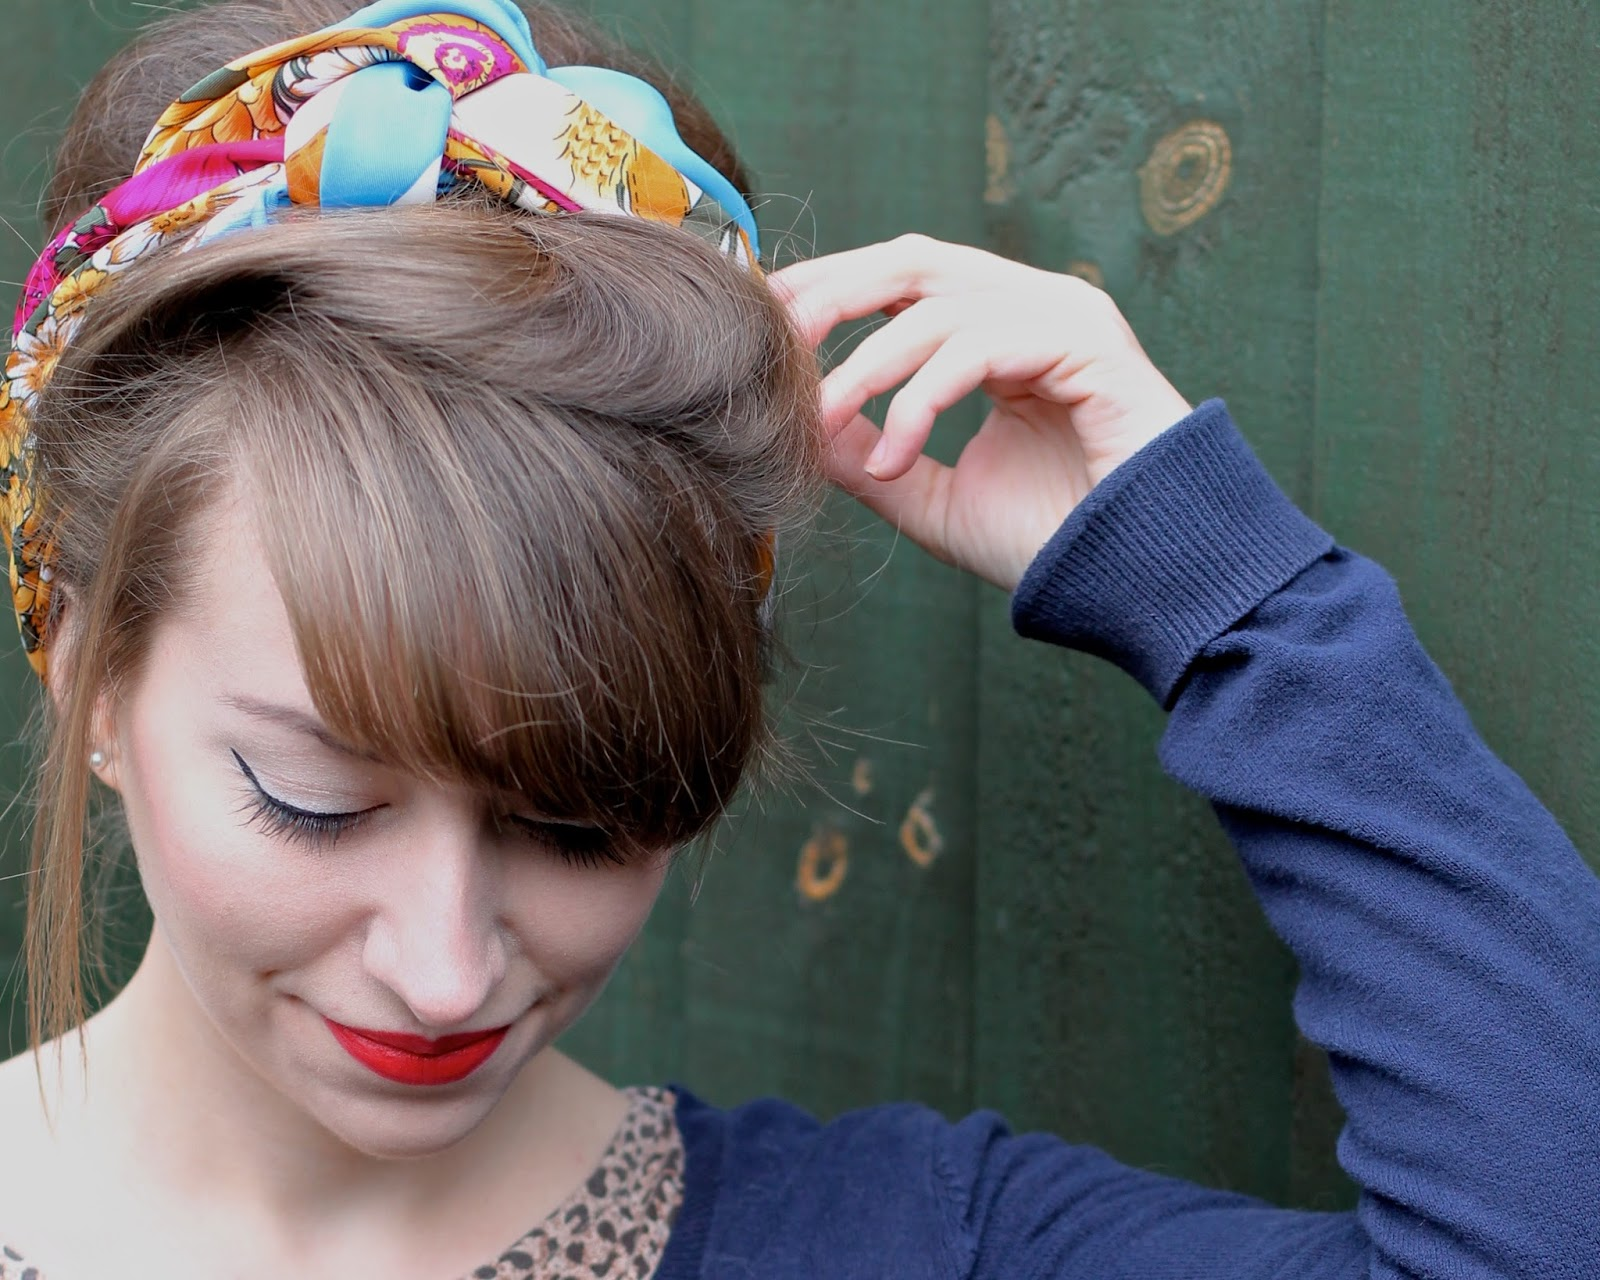 Colourful vintage headscarf